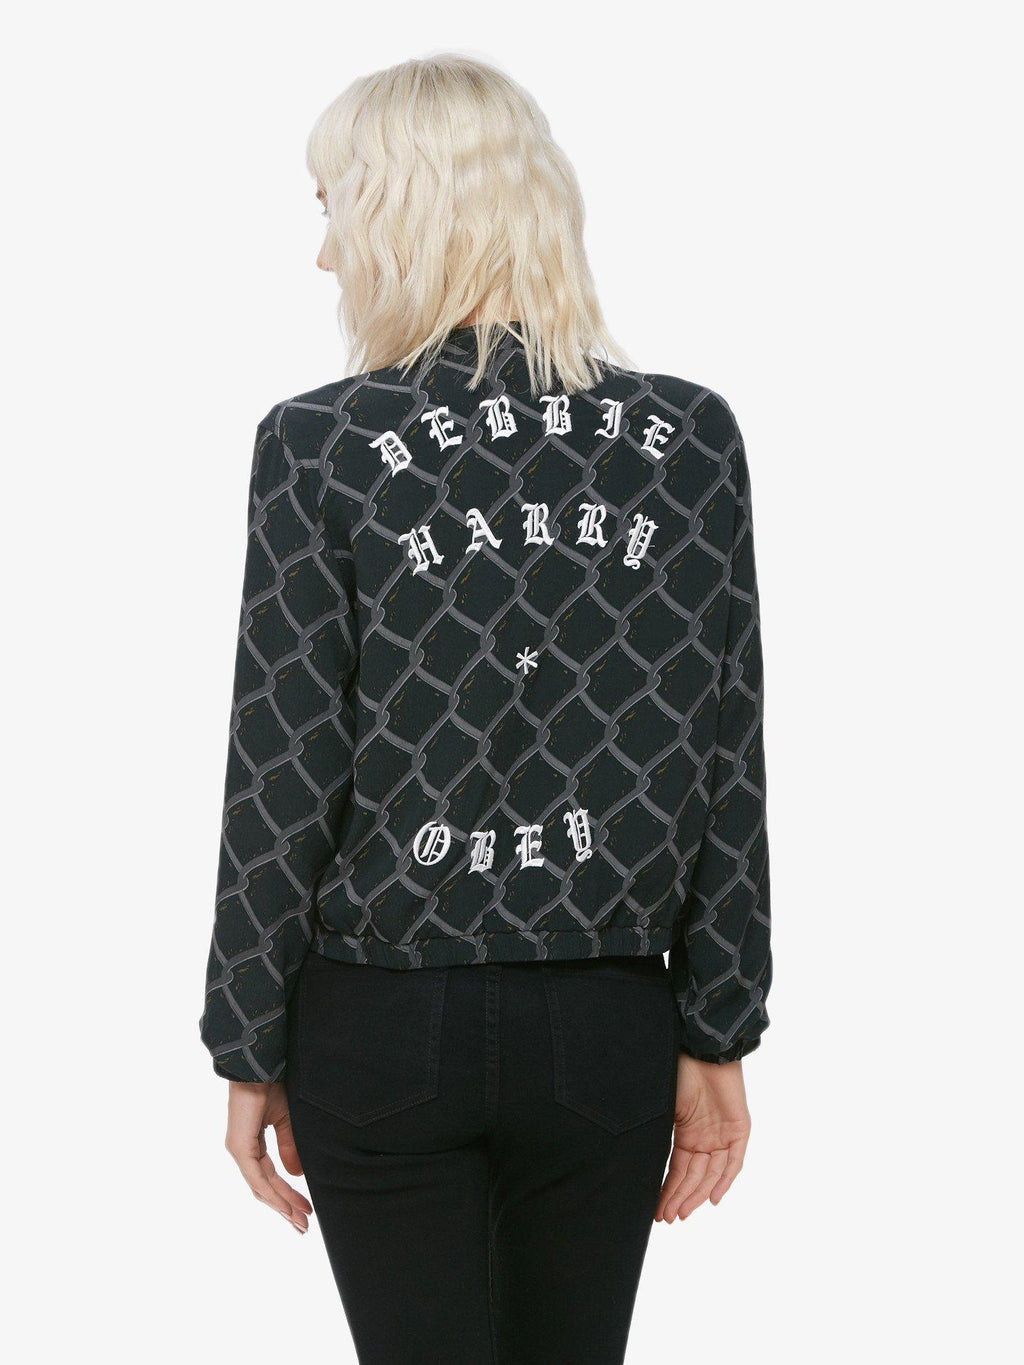 OBEY x Debbie Harry C Train Jacket